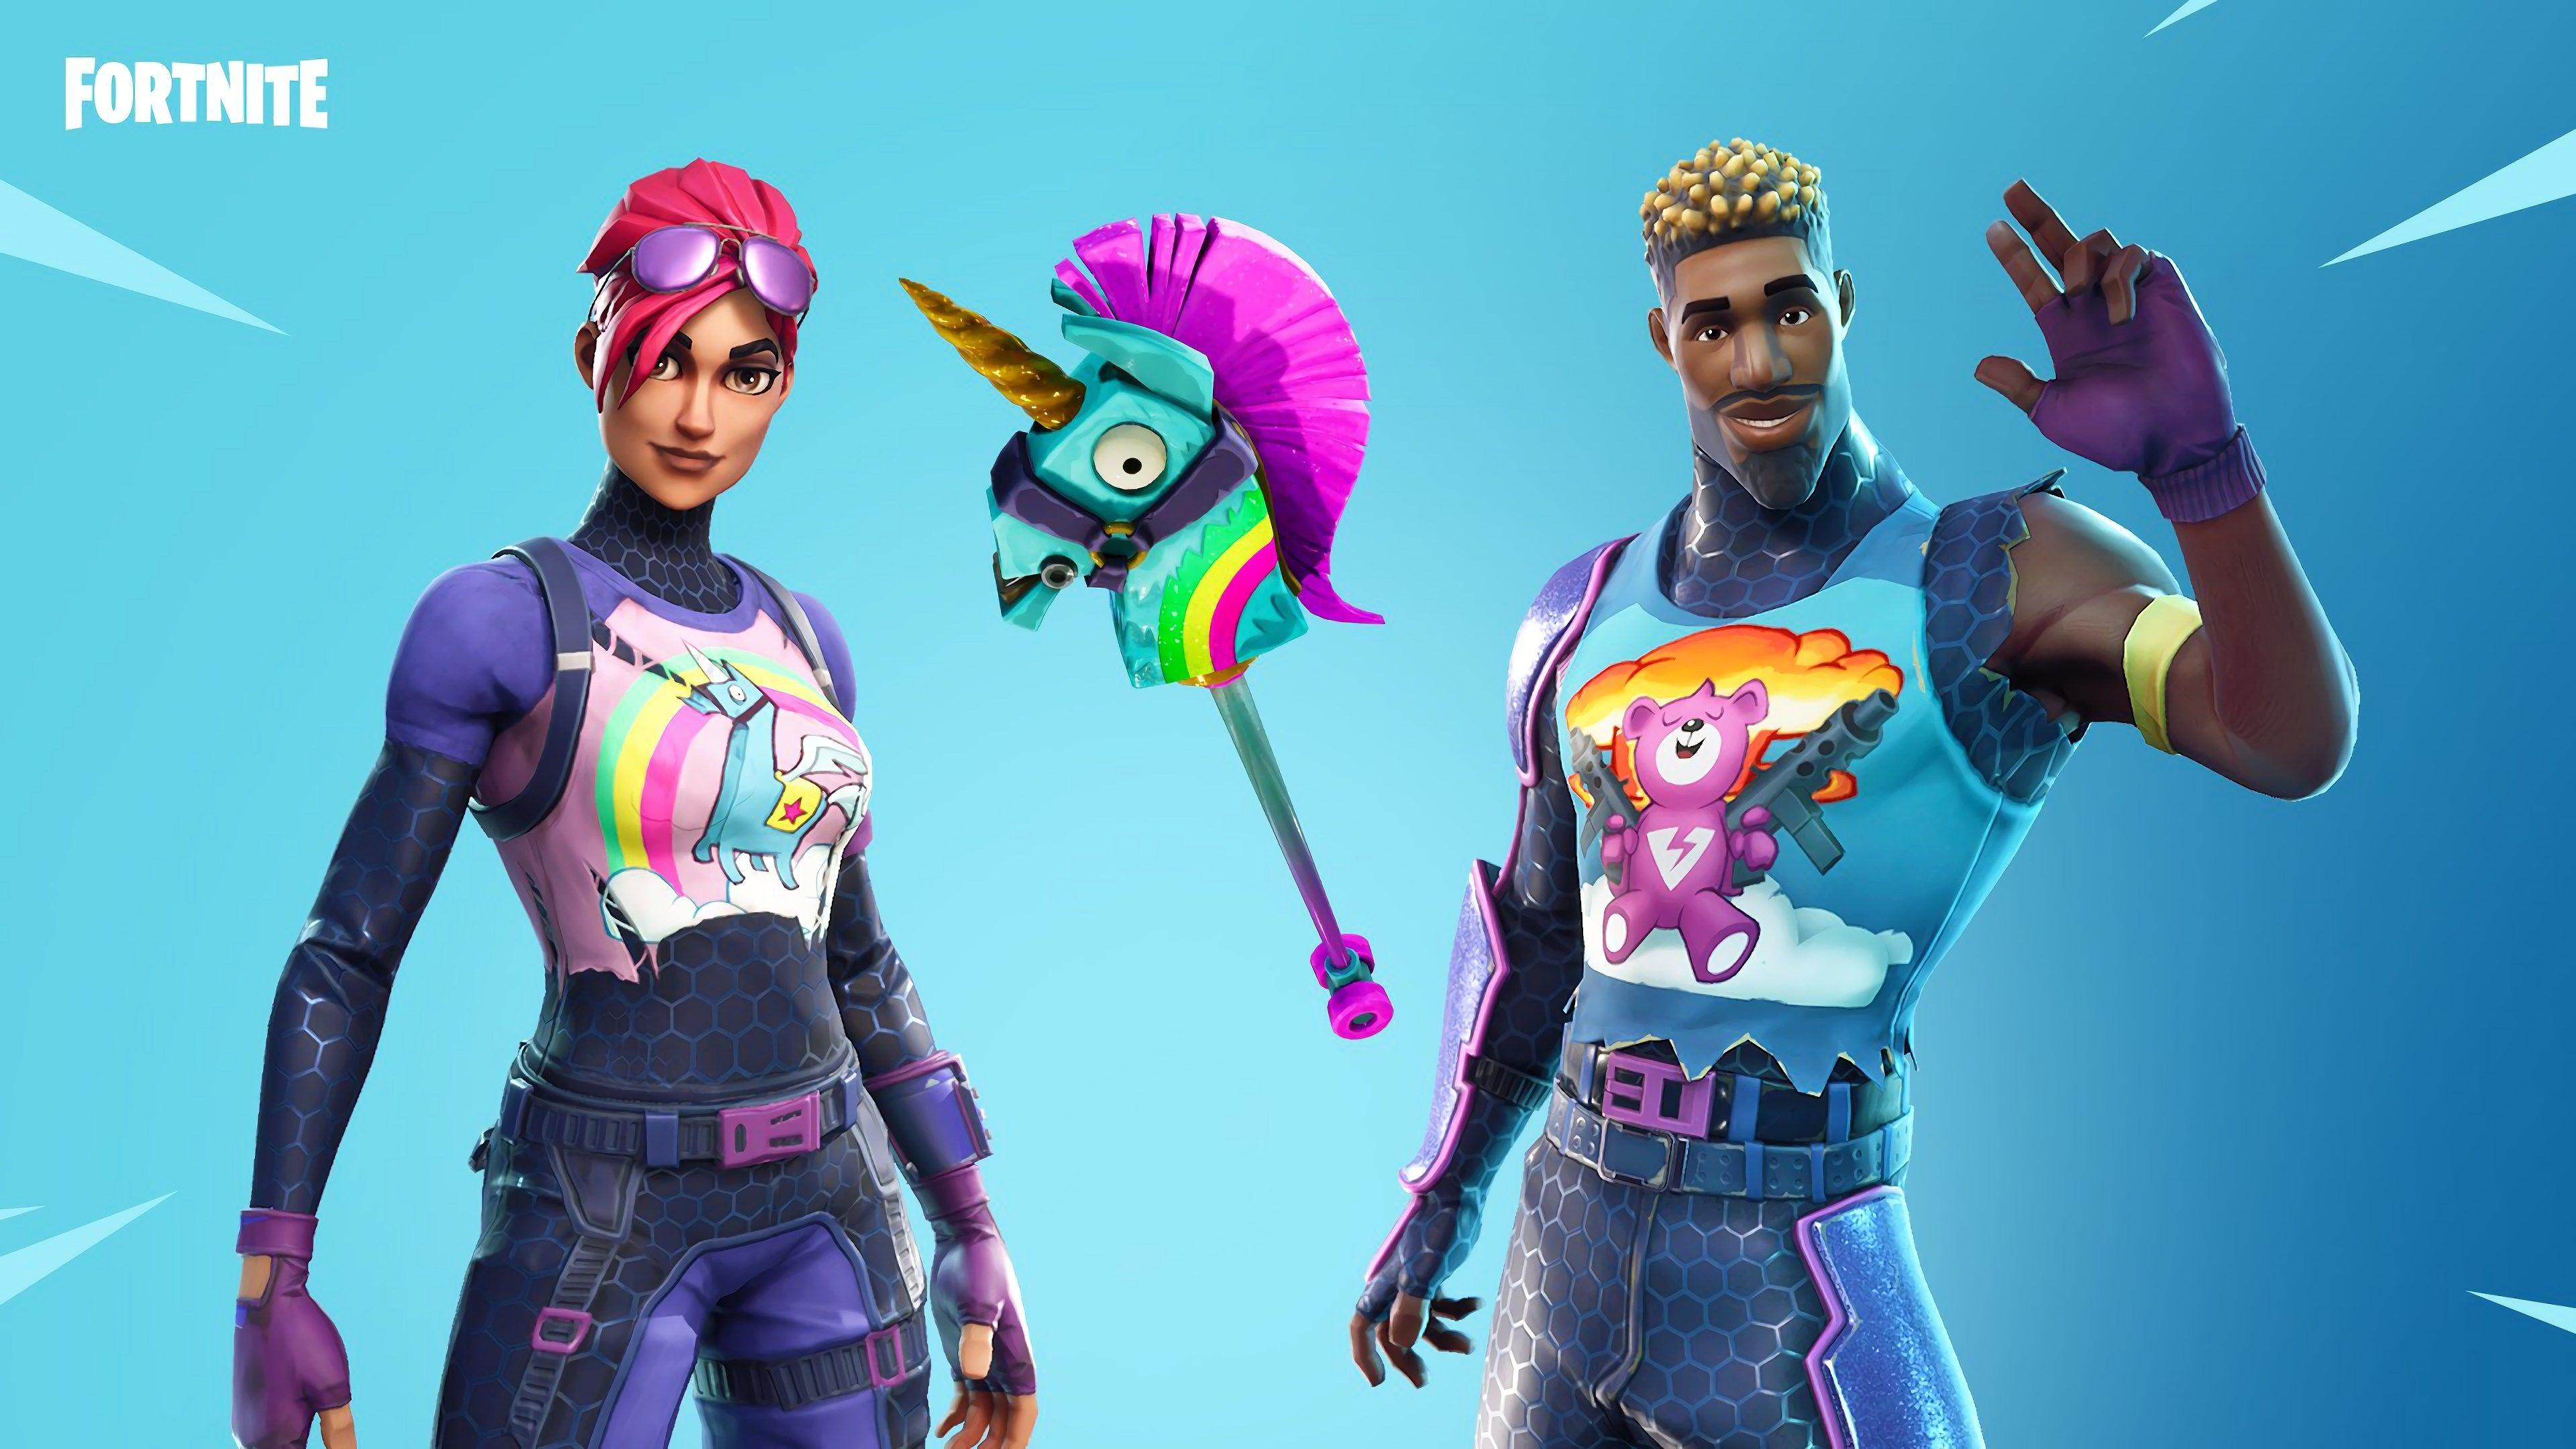 Brite Gunner Wallpapers – Home Sweet Home